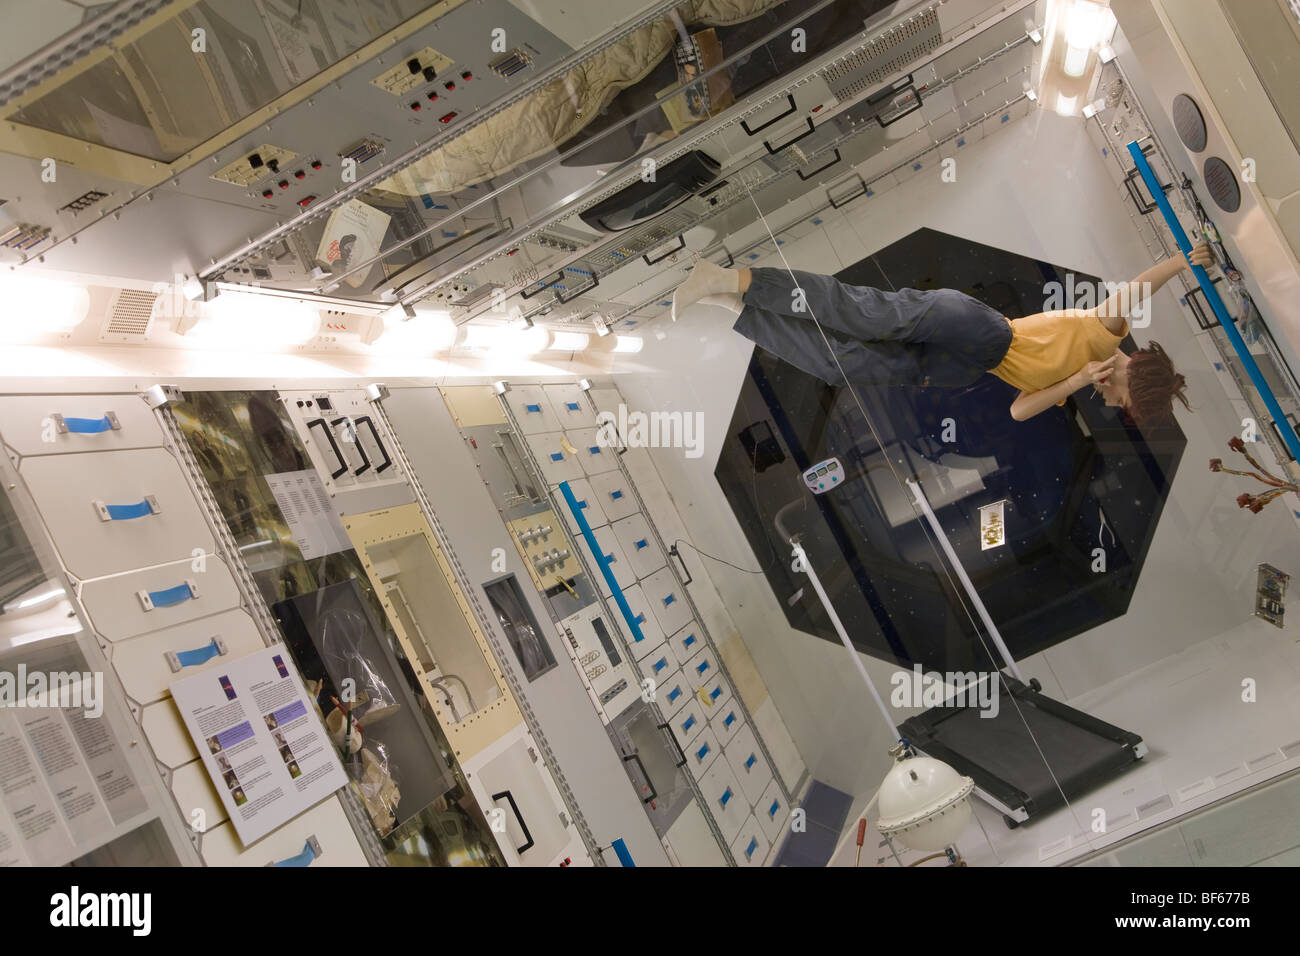 International Space Station ISS, Columbus ISS-Modul, Traffic Museum, Verkehrshaus, Airplanes, Teenagers, Lucerne, - Stock Image